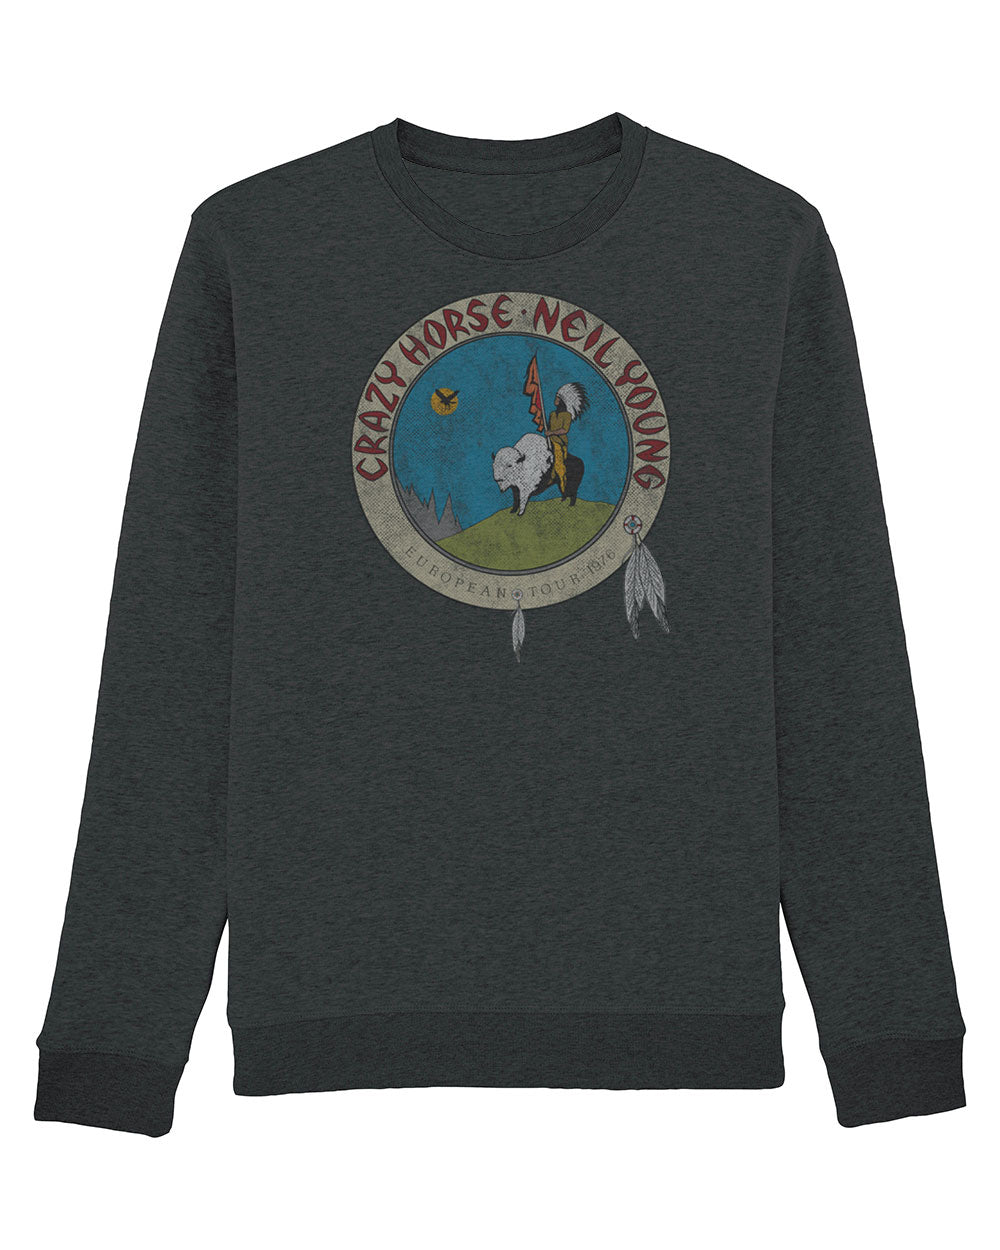 Neil Young Sweat Shirt - Neil Young Euro Tour 1976 Sweat Shirt